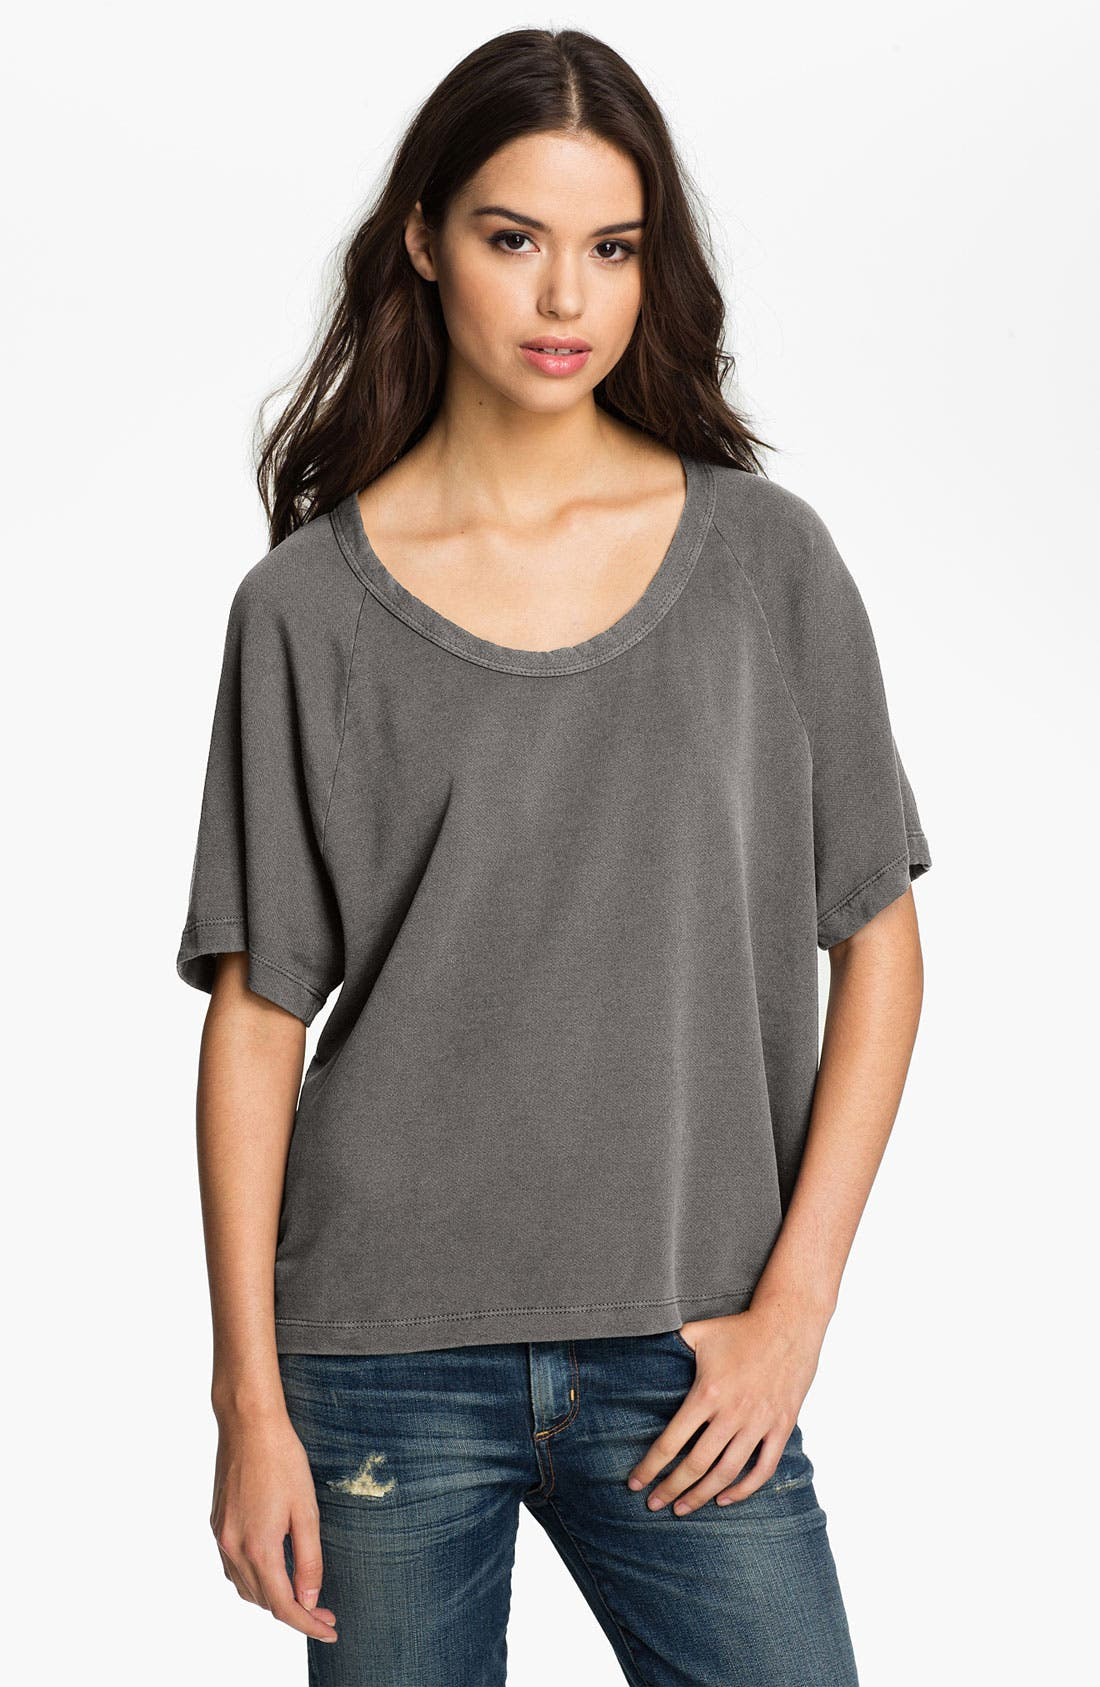 Alternate Image 1 Selected - James Perse Short Sleeve Oversized Sweatshirt